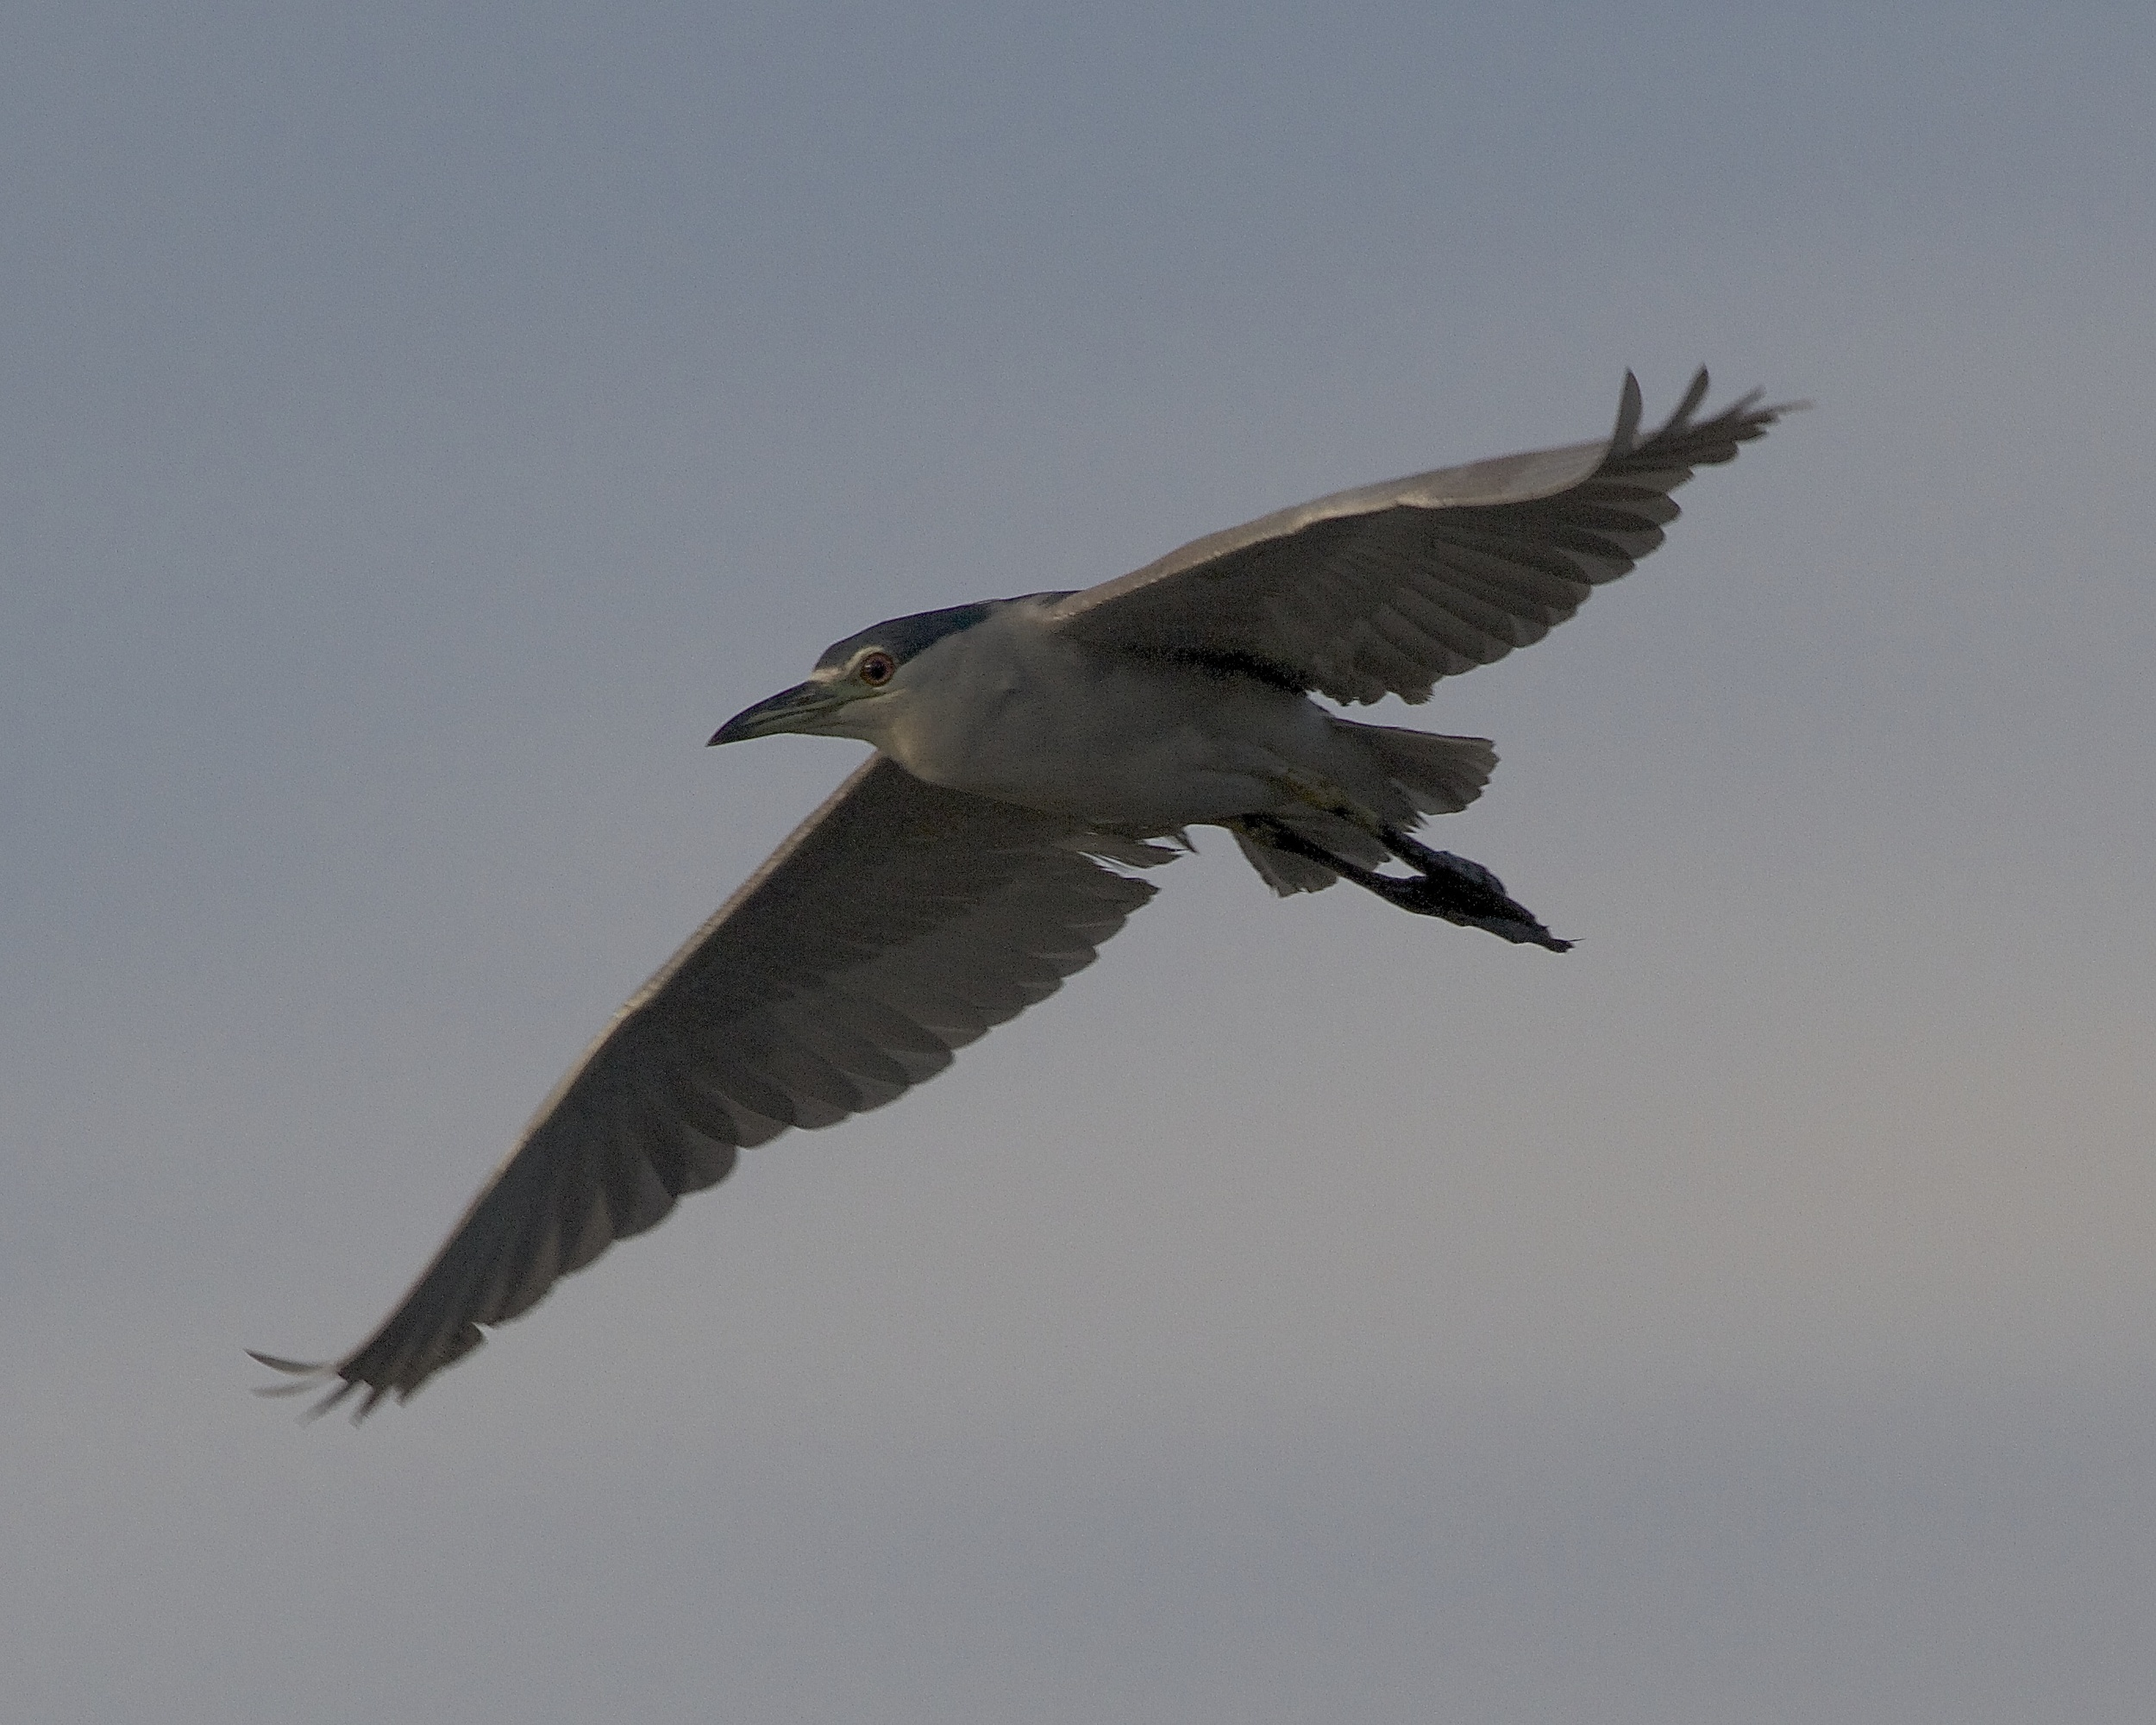 Black Crowned Night Heron flyover in the dark early morning sky.